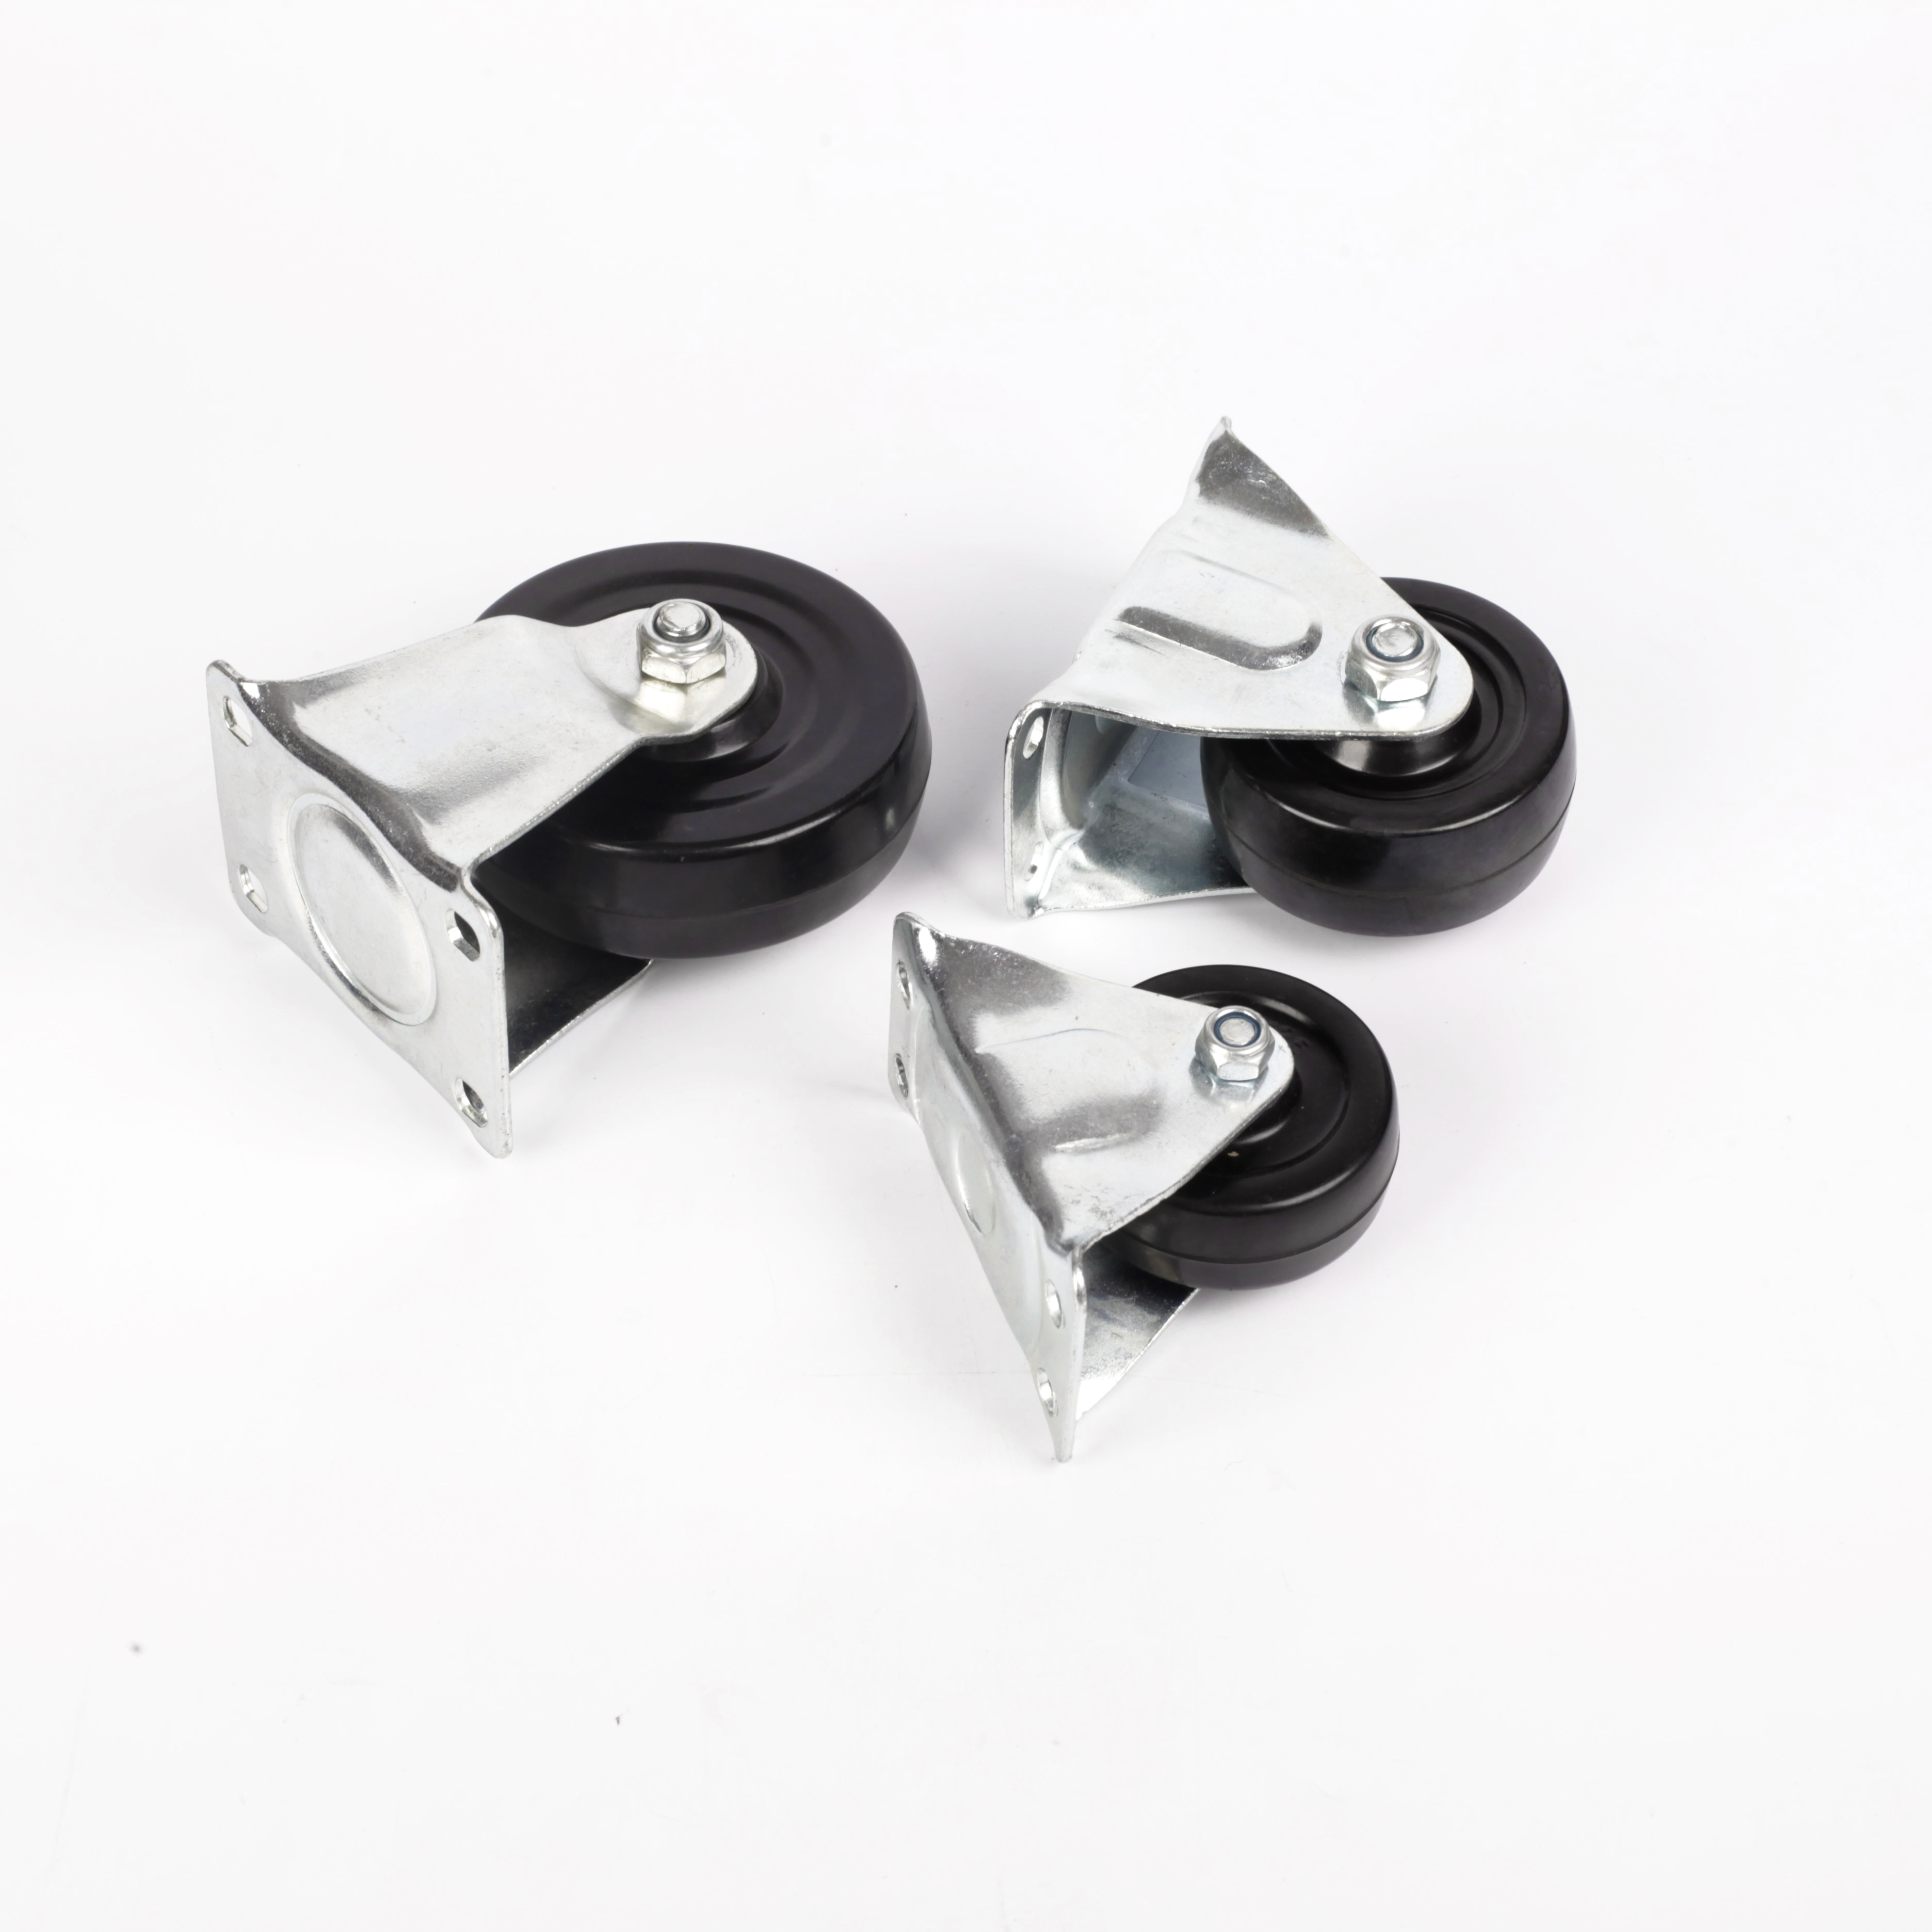 Rigid Rubber Caster Wheels for Siding Gate